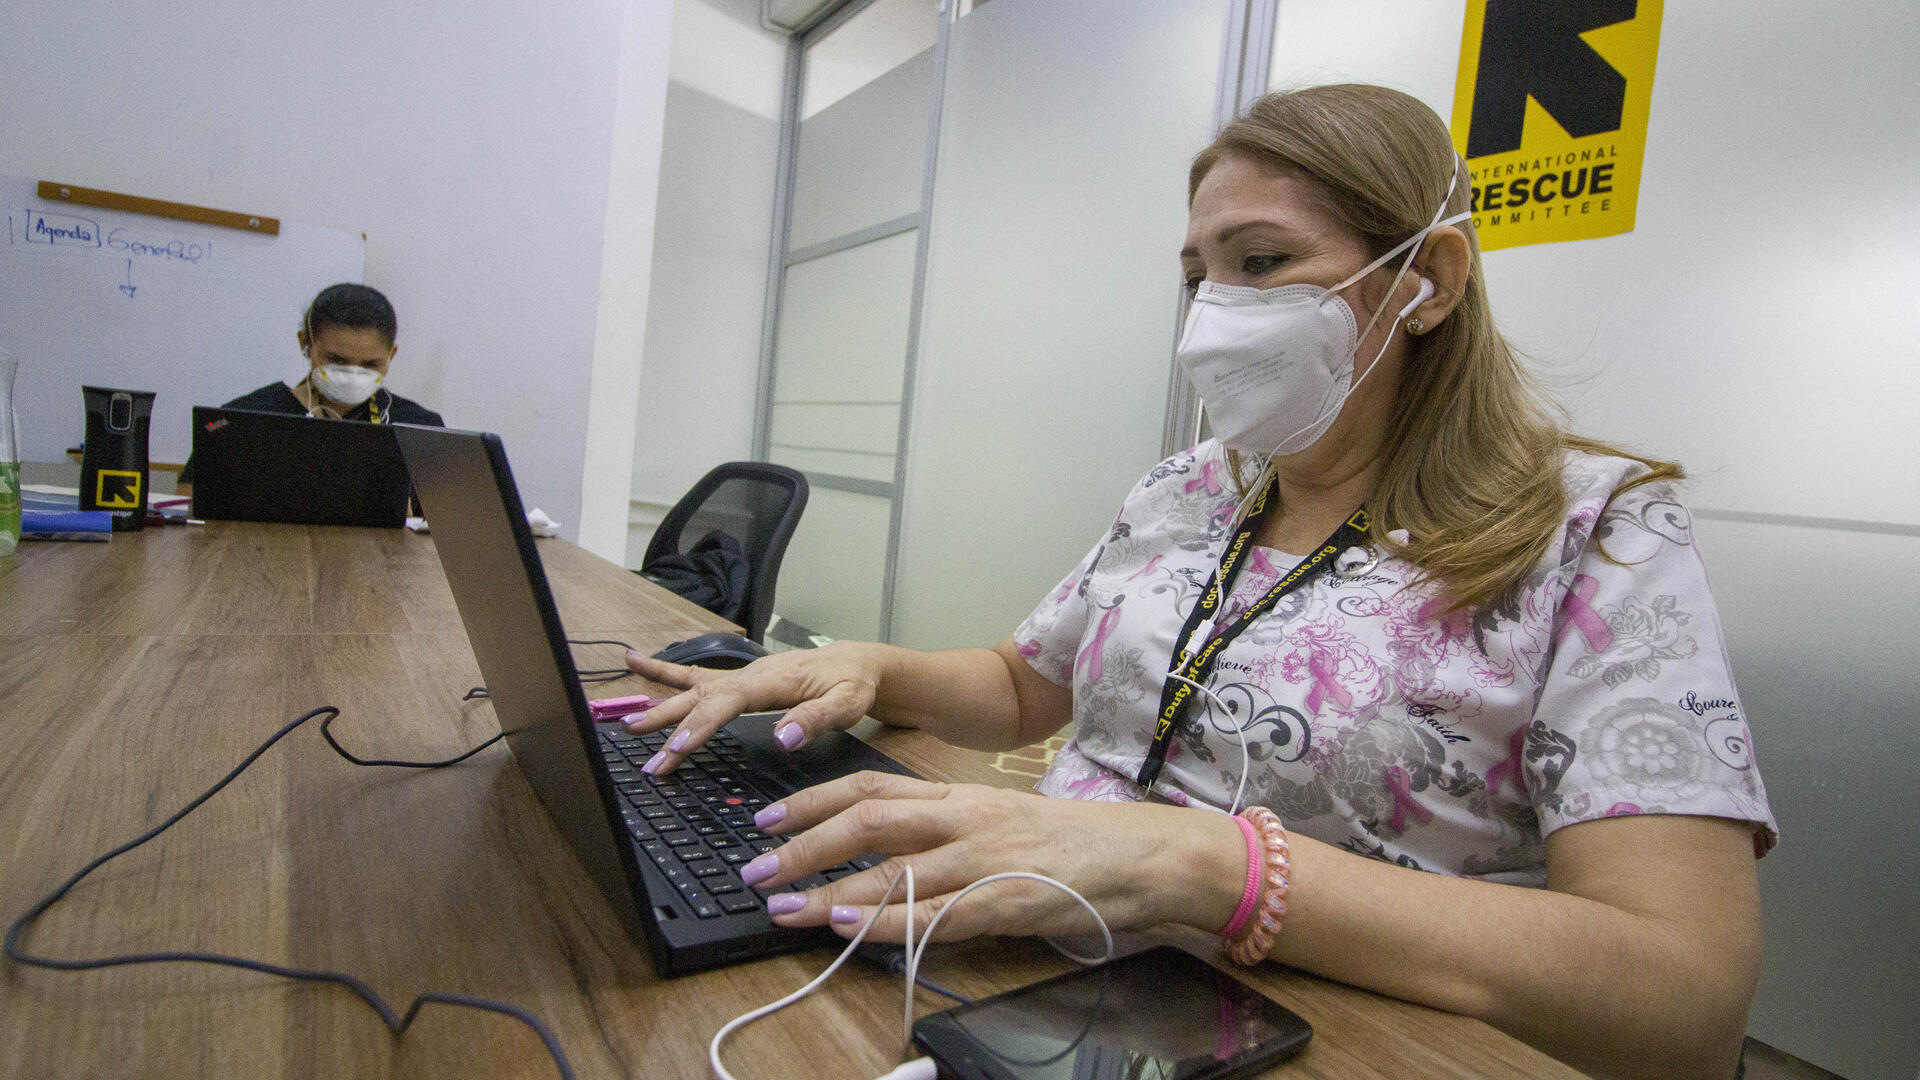 An IRC healthworker wearing a mask to protect herself from COVID-19 types at a laptop